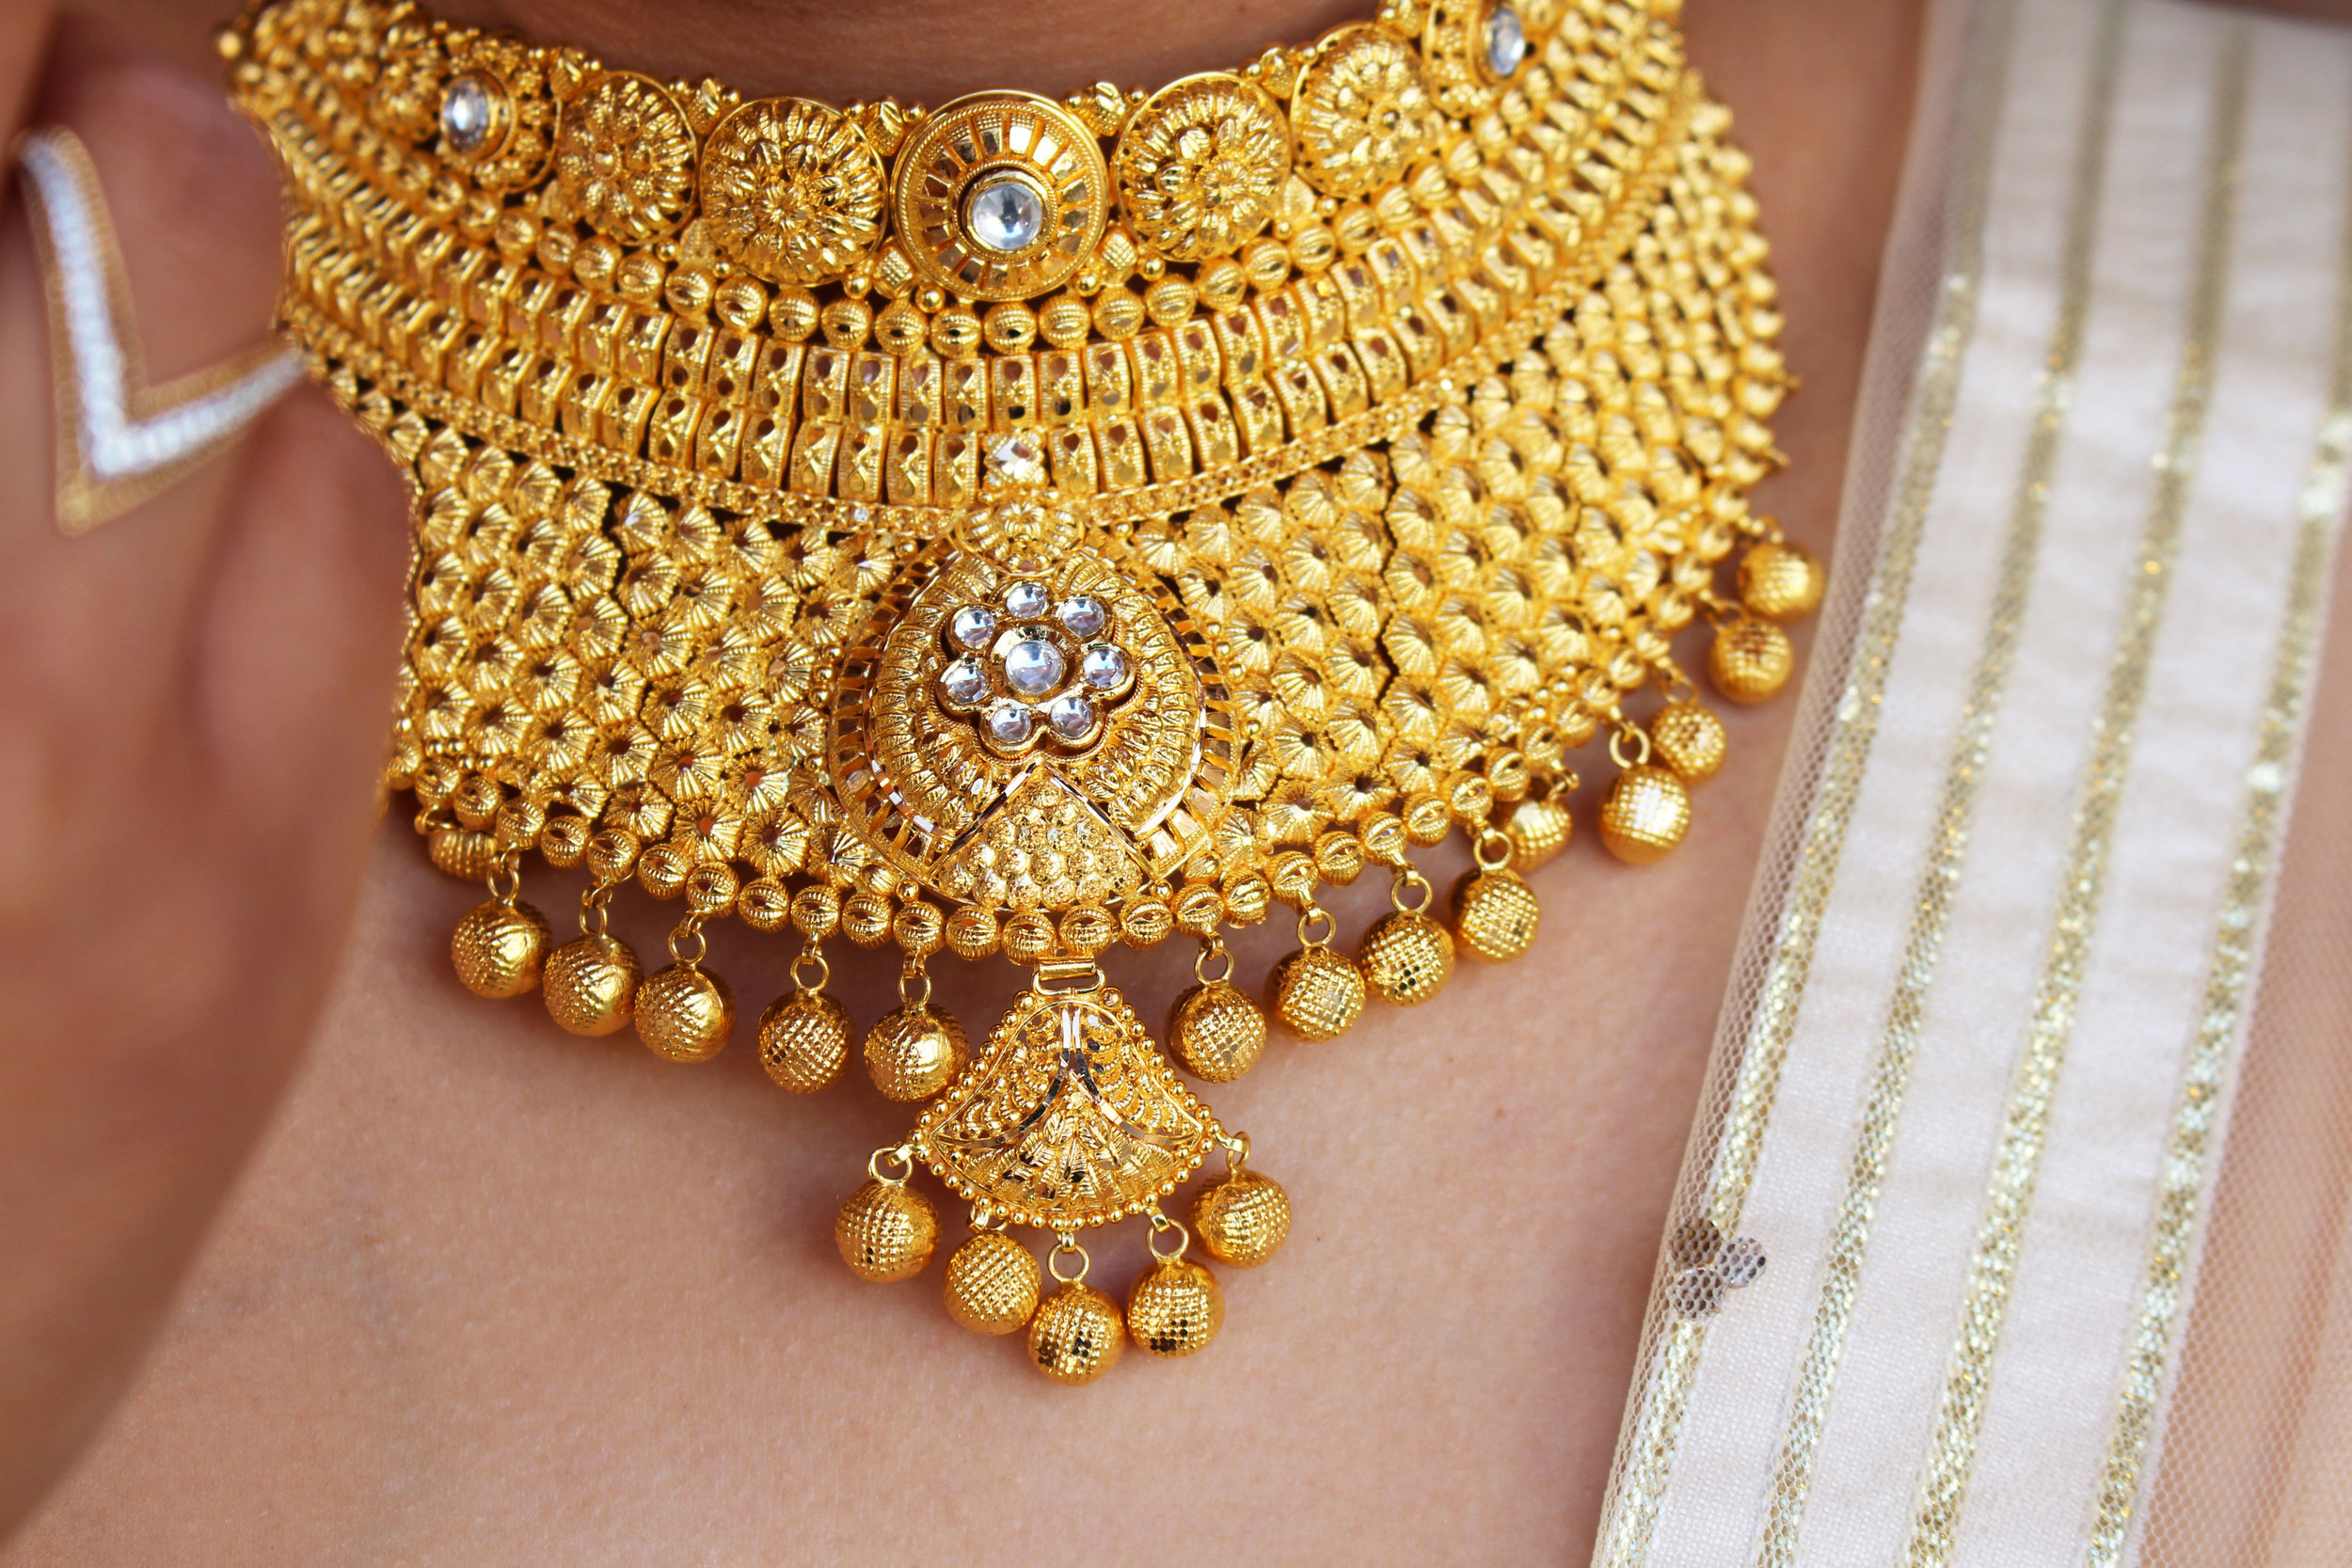 Bridal Choker Necklace.jpg